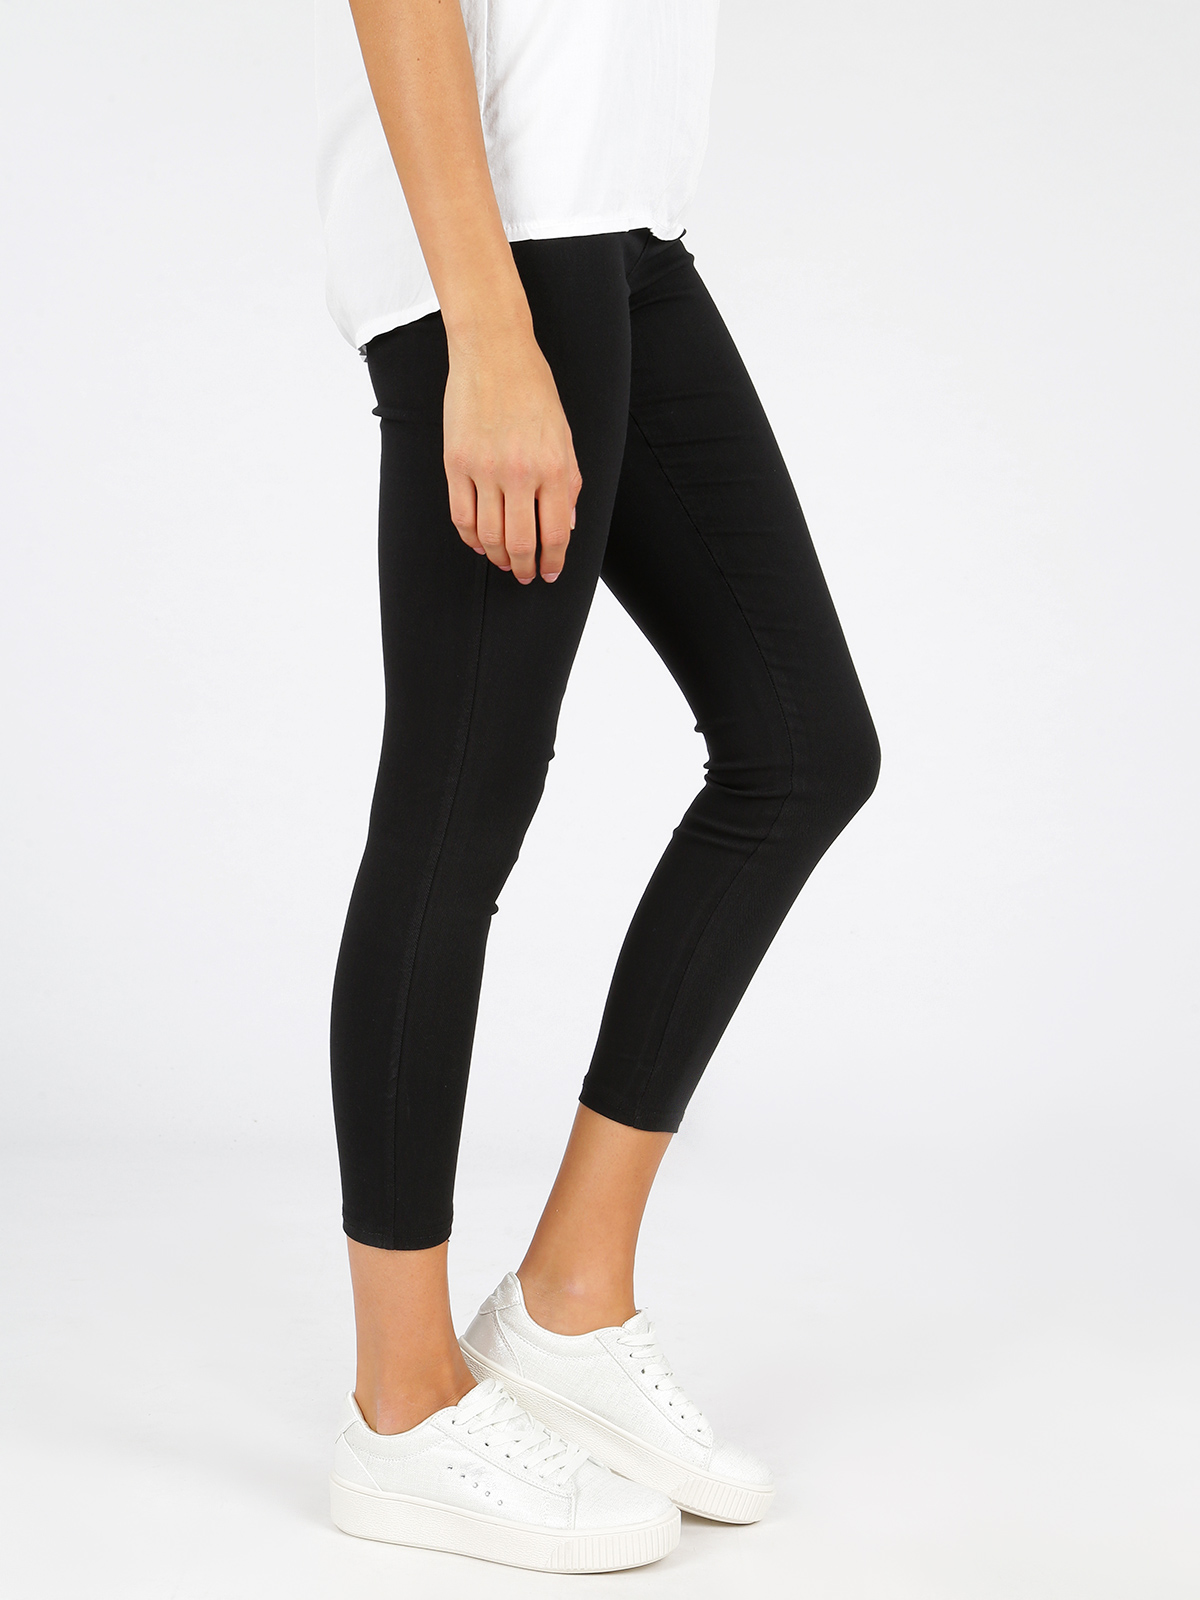 Stretch Leggings High Waist